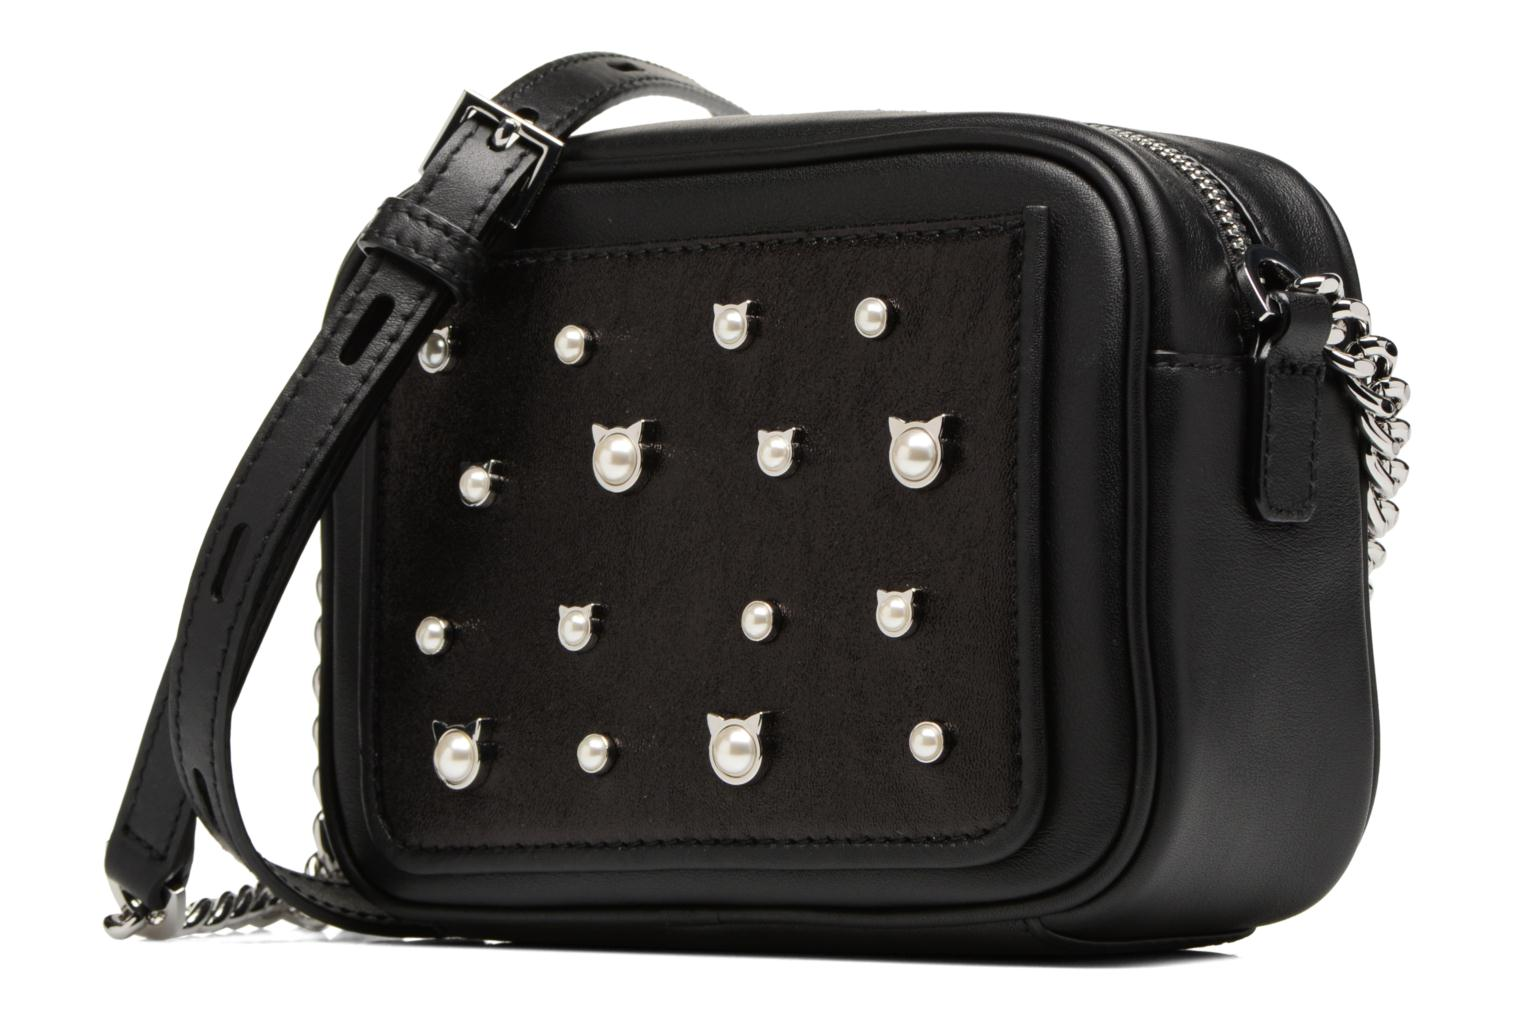 BLACK A999 Pearl Cat Crossbody Small LAGERFELD KARL q8wTYY